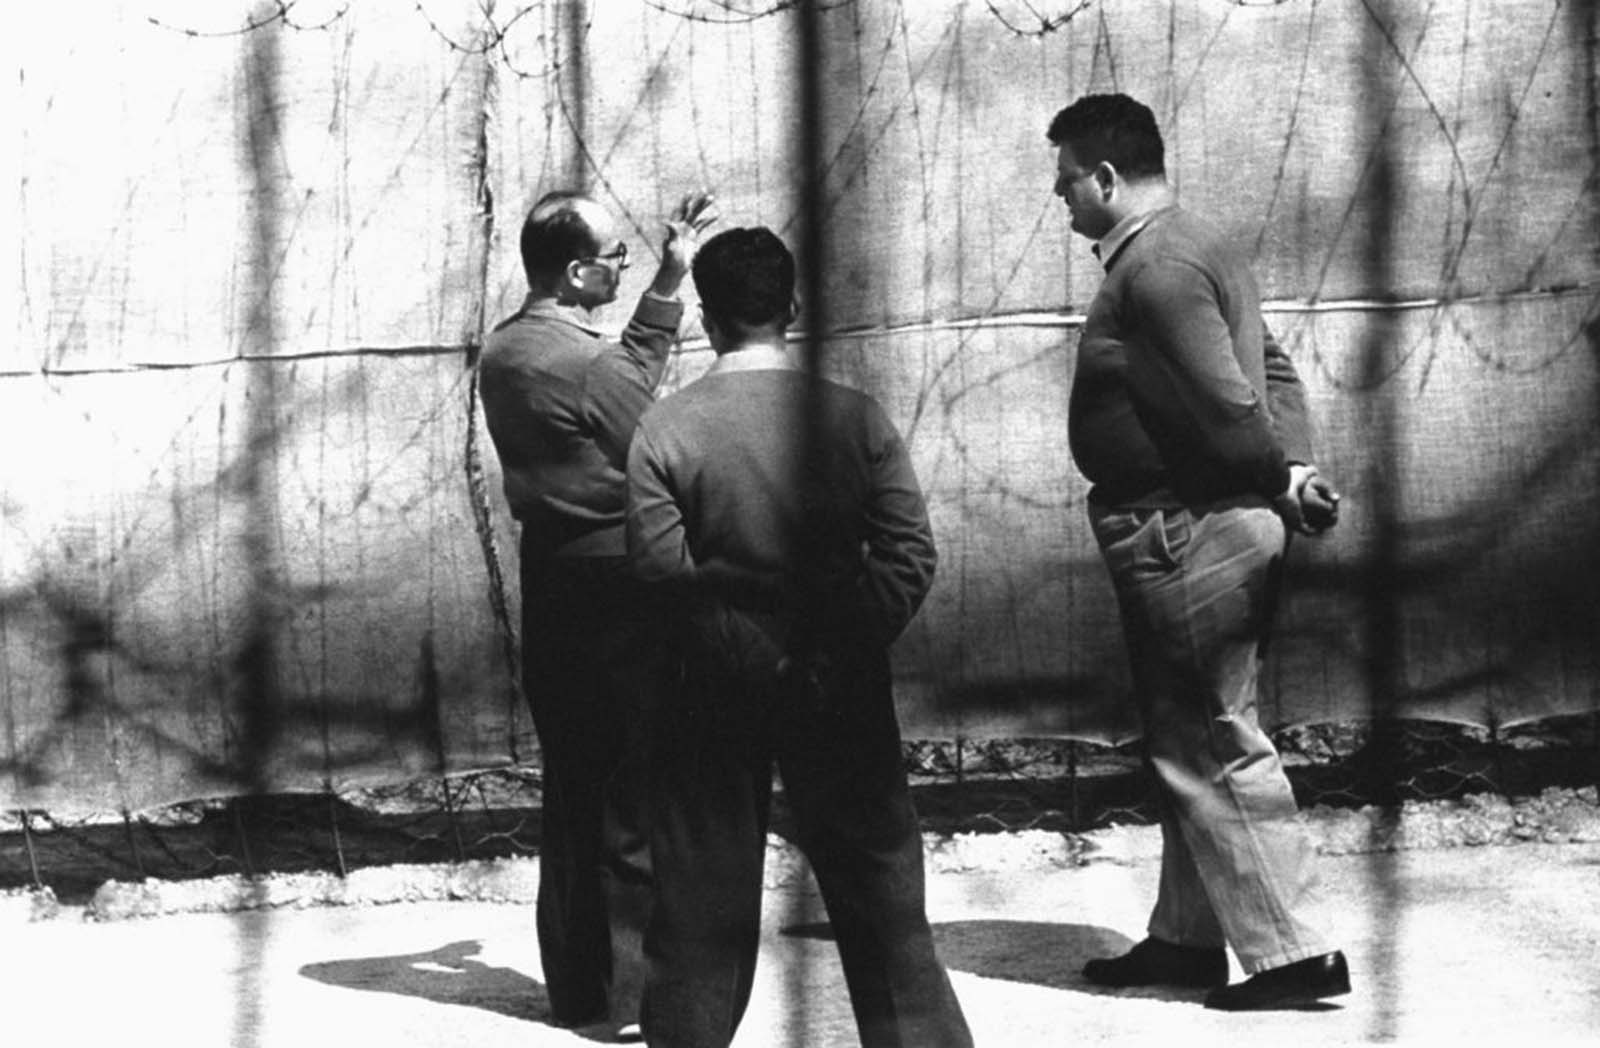 Trying to talk during the daily outdoor exercise period, prisoner Eichmann met unshakeable silence from prison guards. He was allowed to walk outside for a half hour a day, when the weather was good.